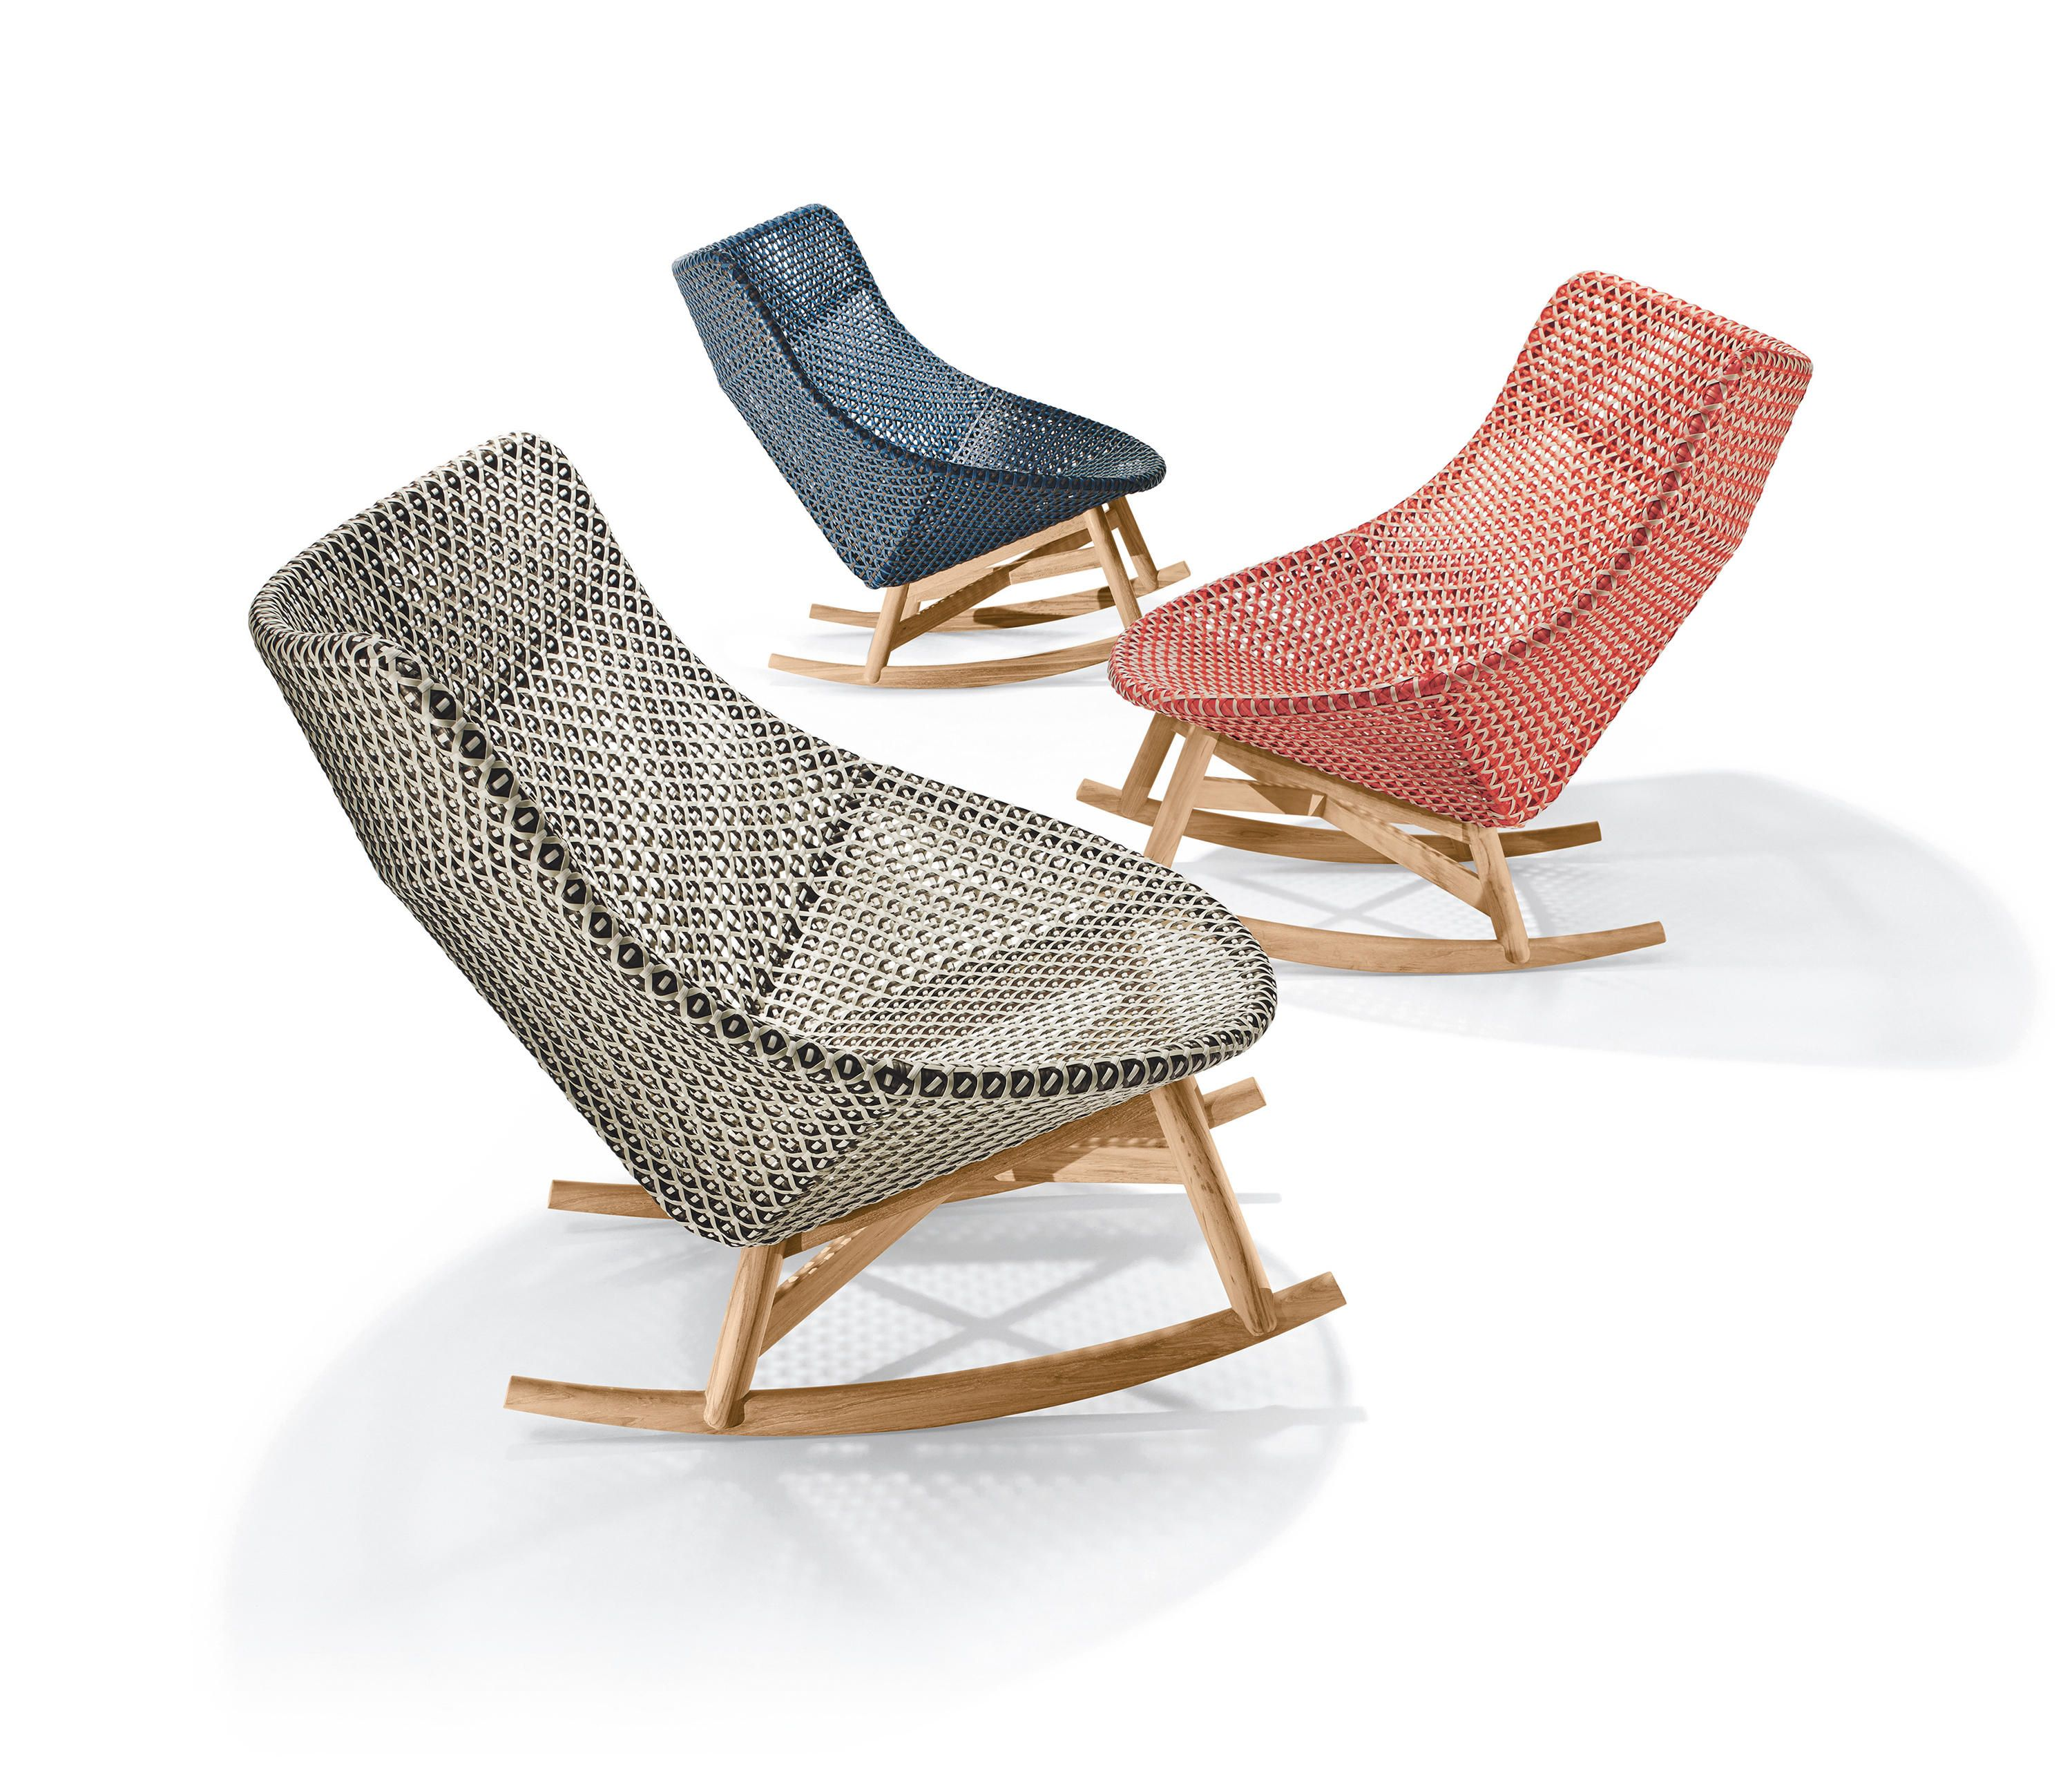 MBRACE LOUNGE CHAIR - Garden armchairs from DEDON  Architonic in